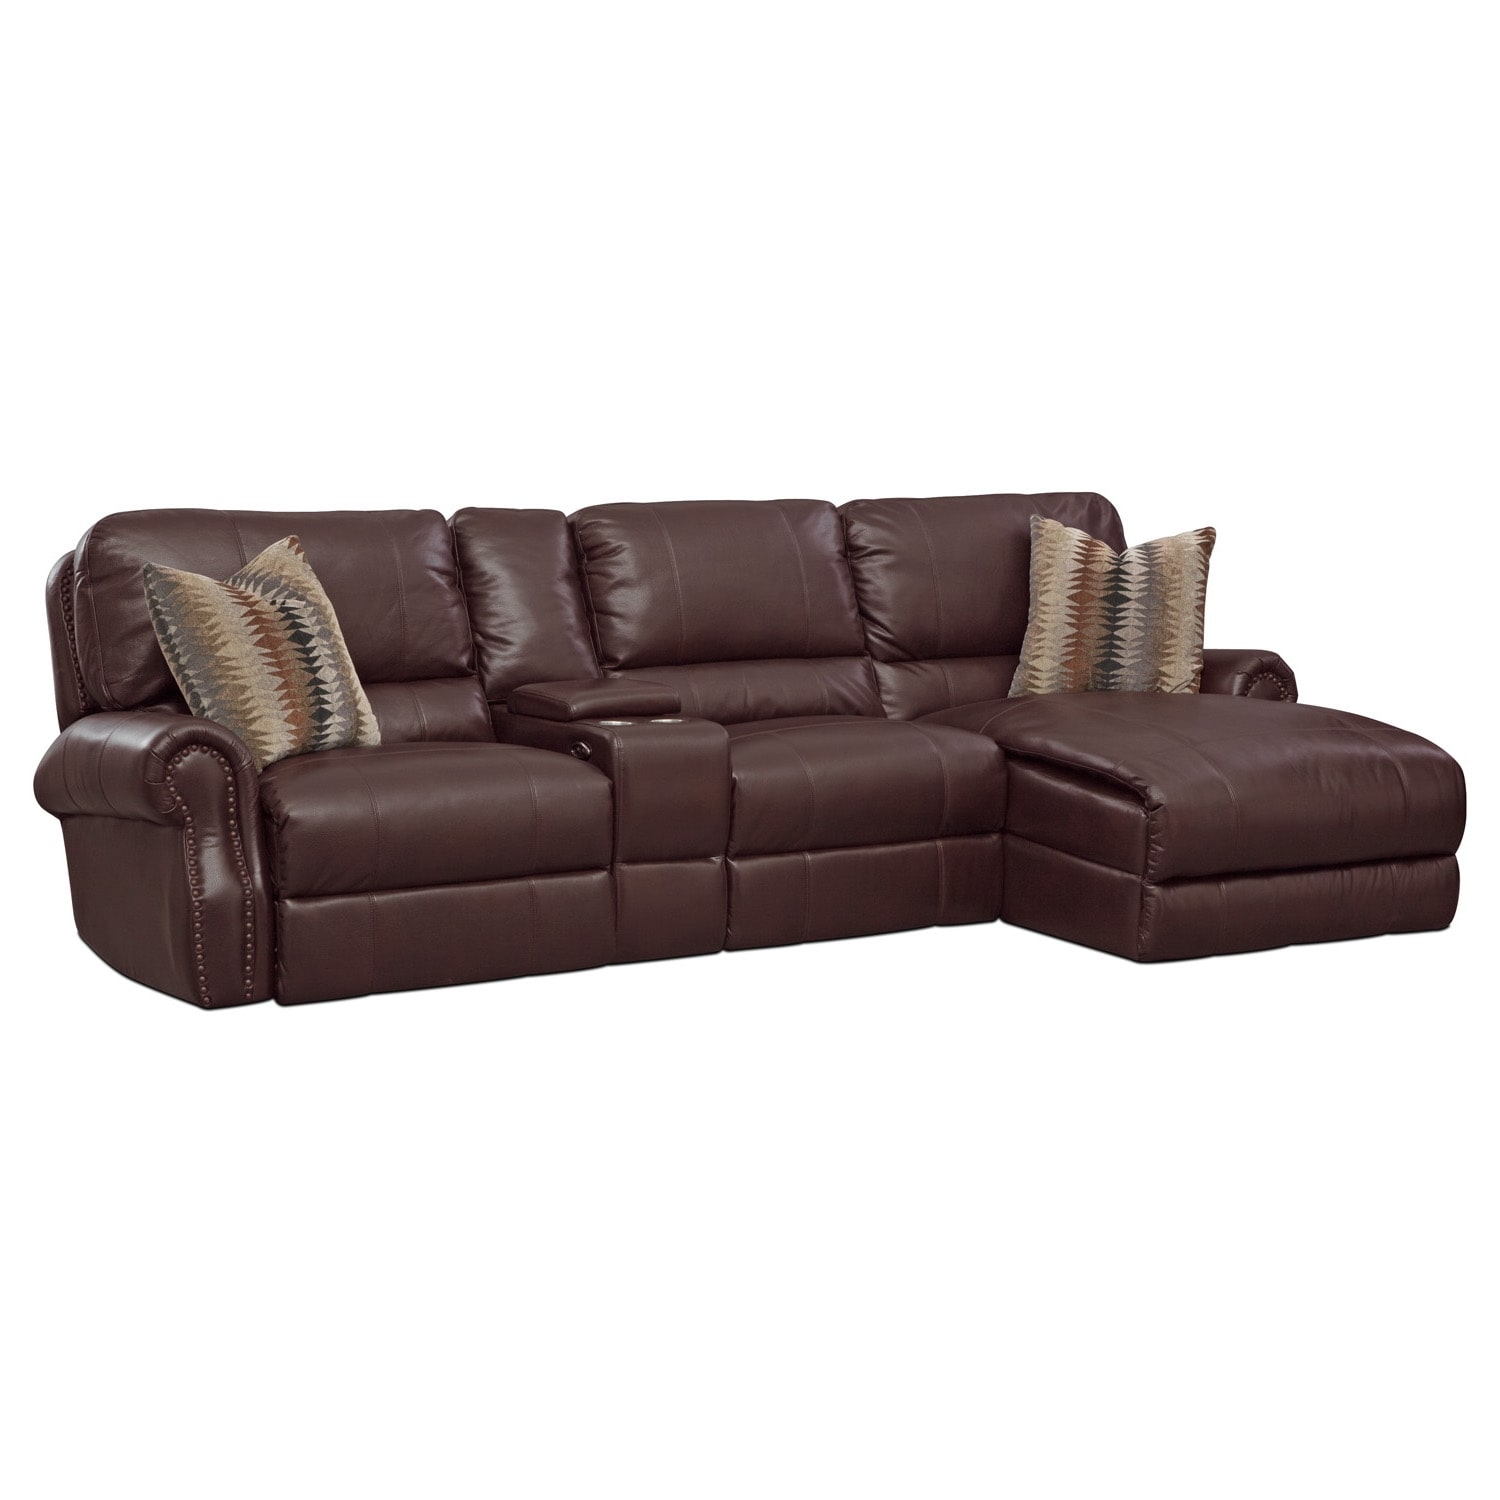 Living Room Furniture - Princeton 2 Pc. Power Sectional